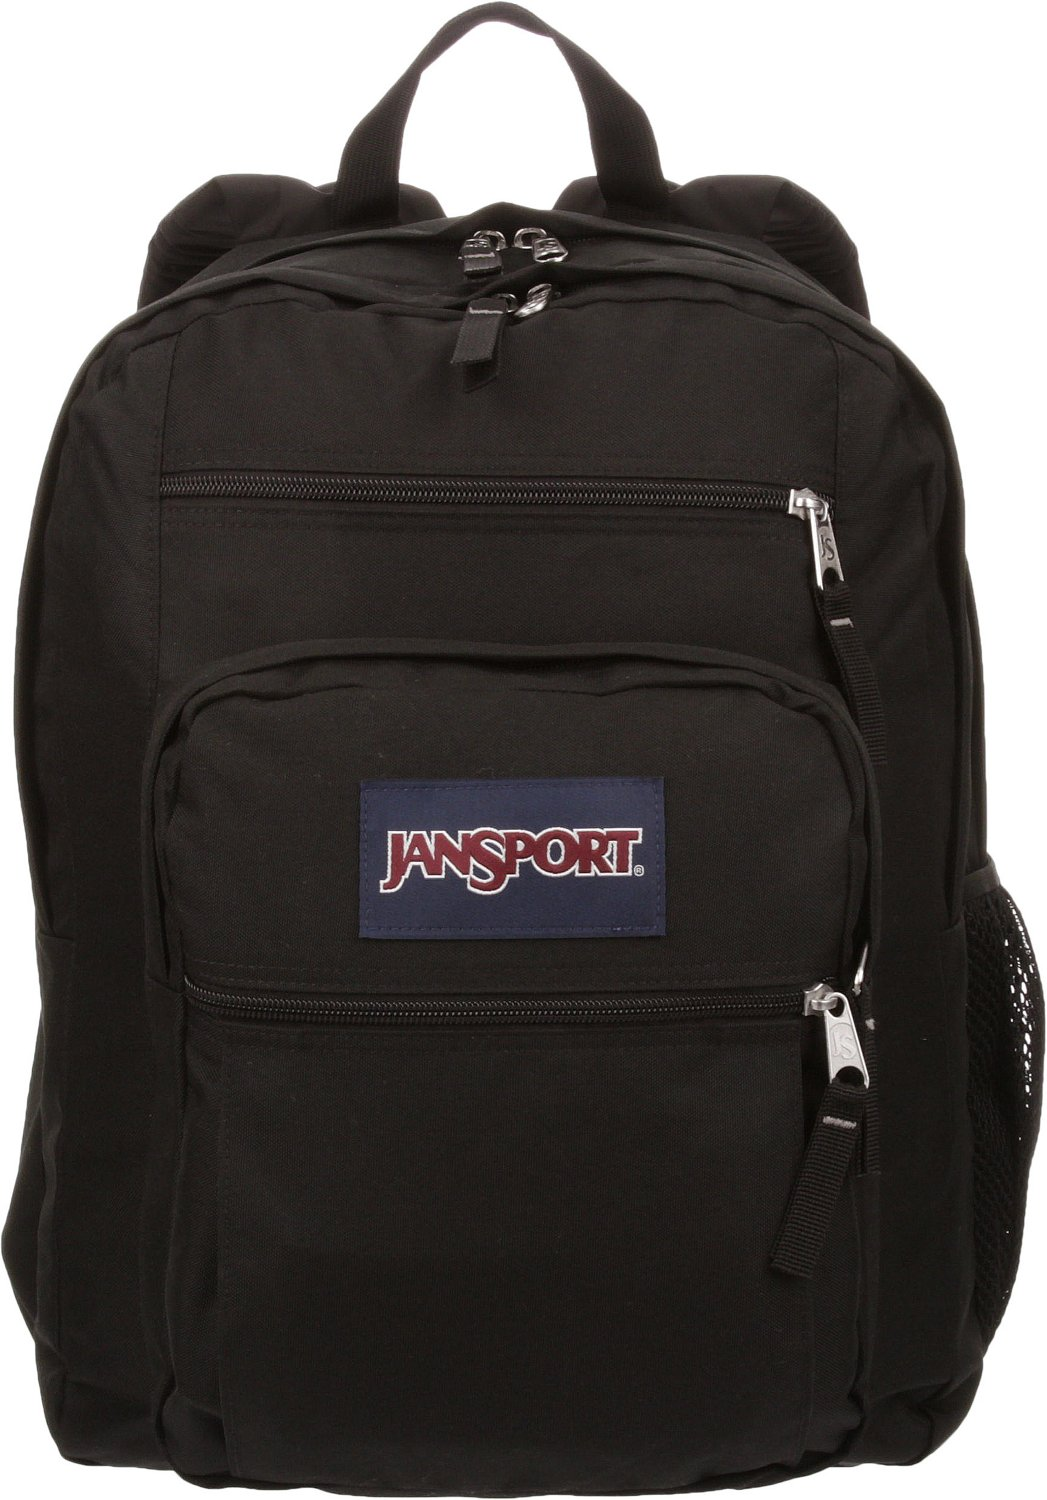 JanSport Big Student Backpack - view number 2